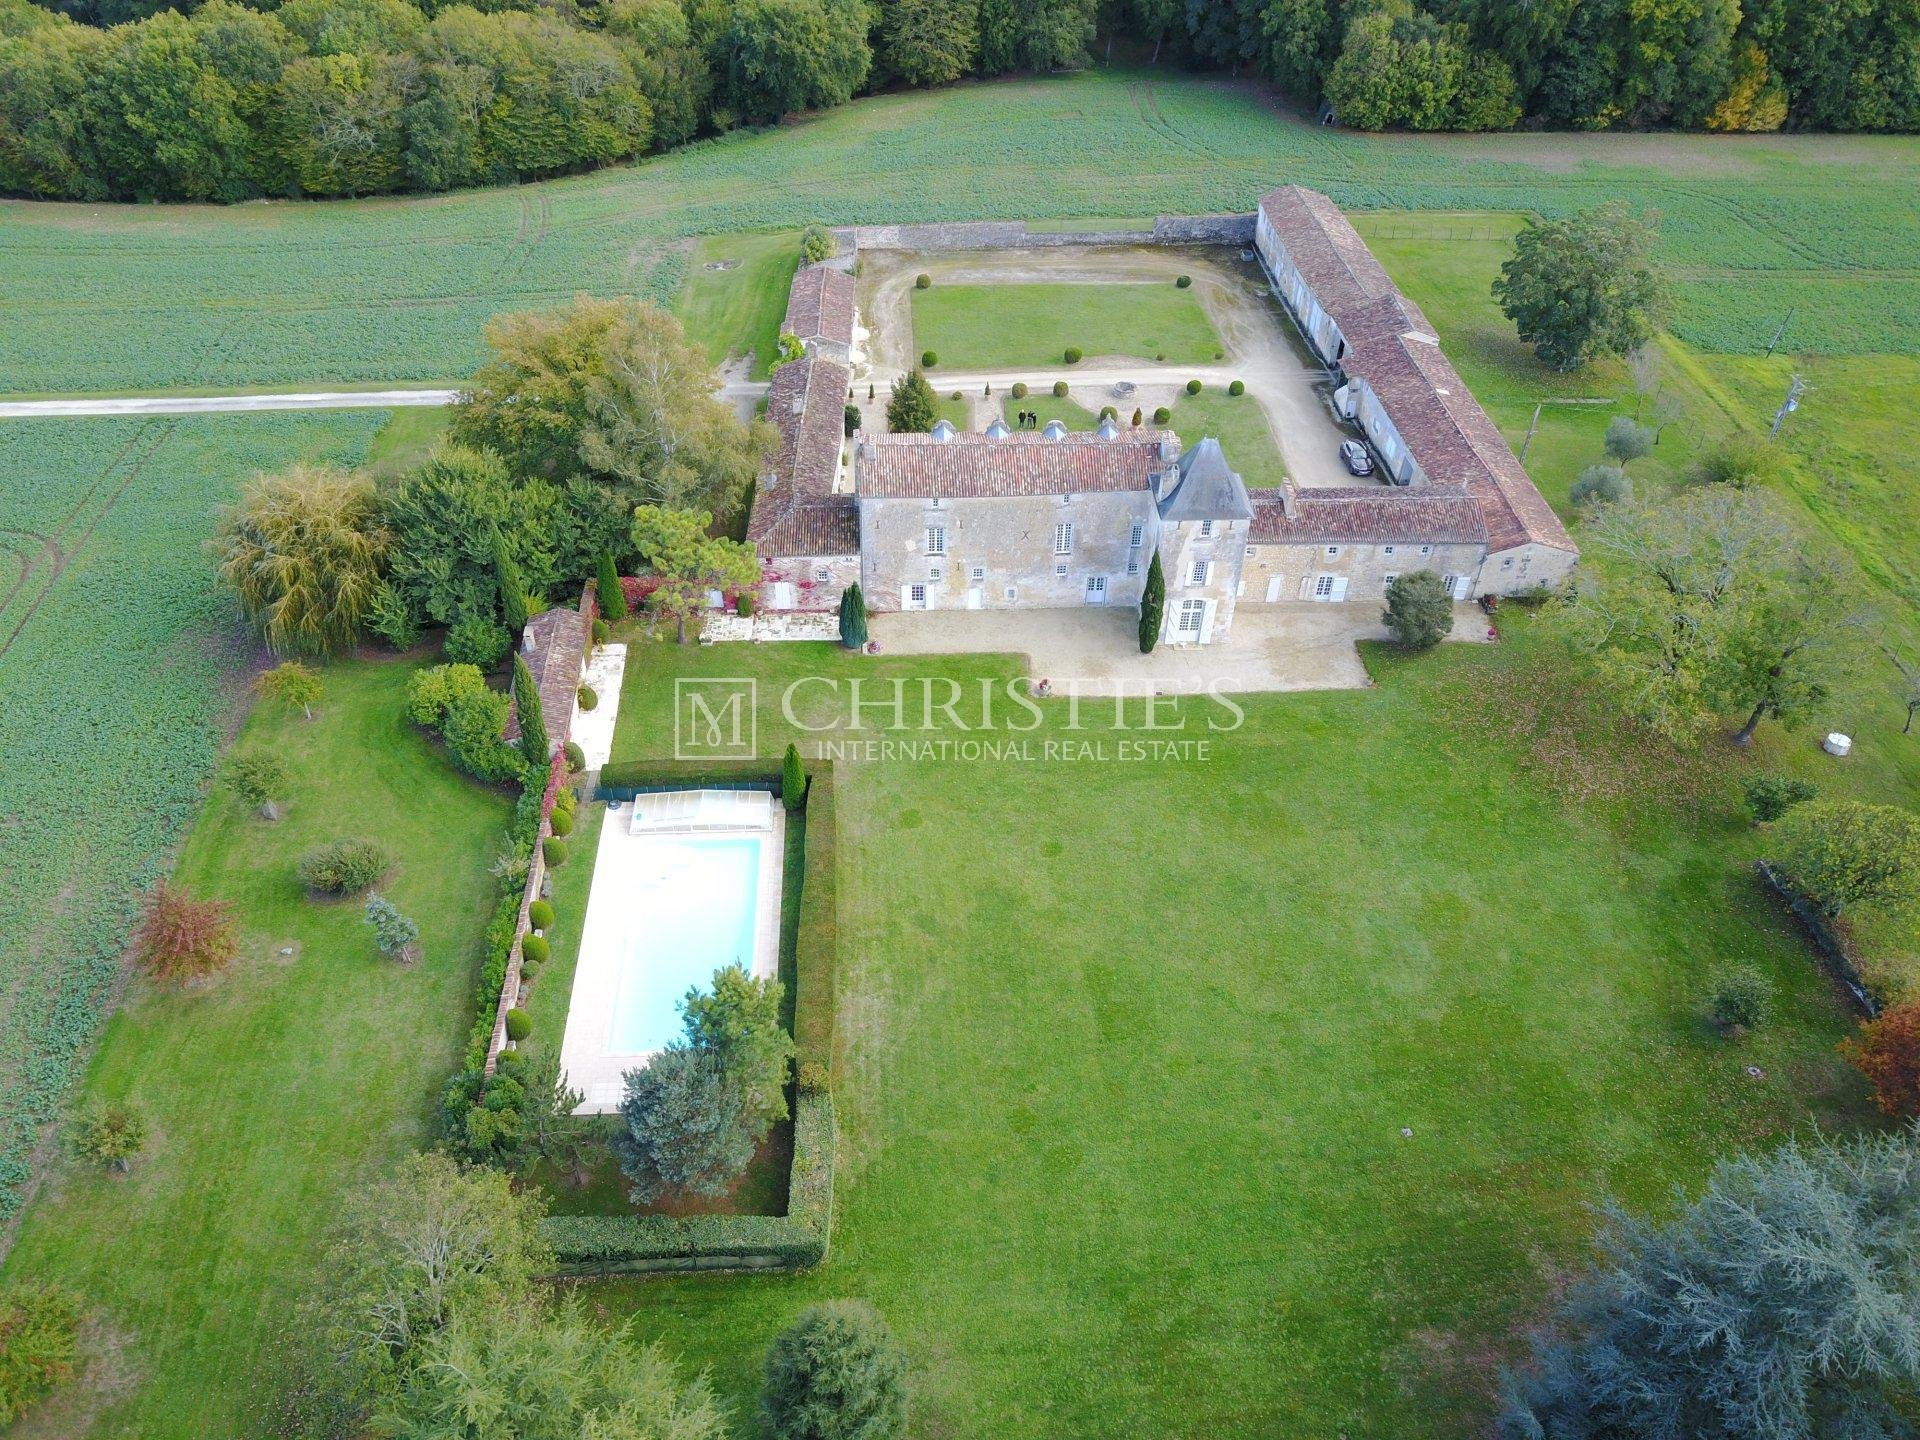 Magnificent 15th century manor house